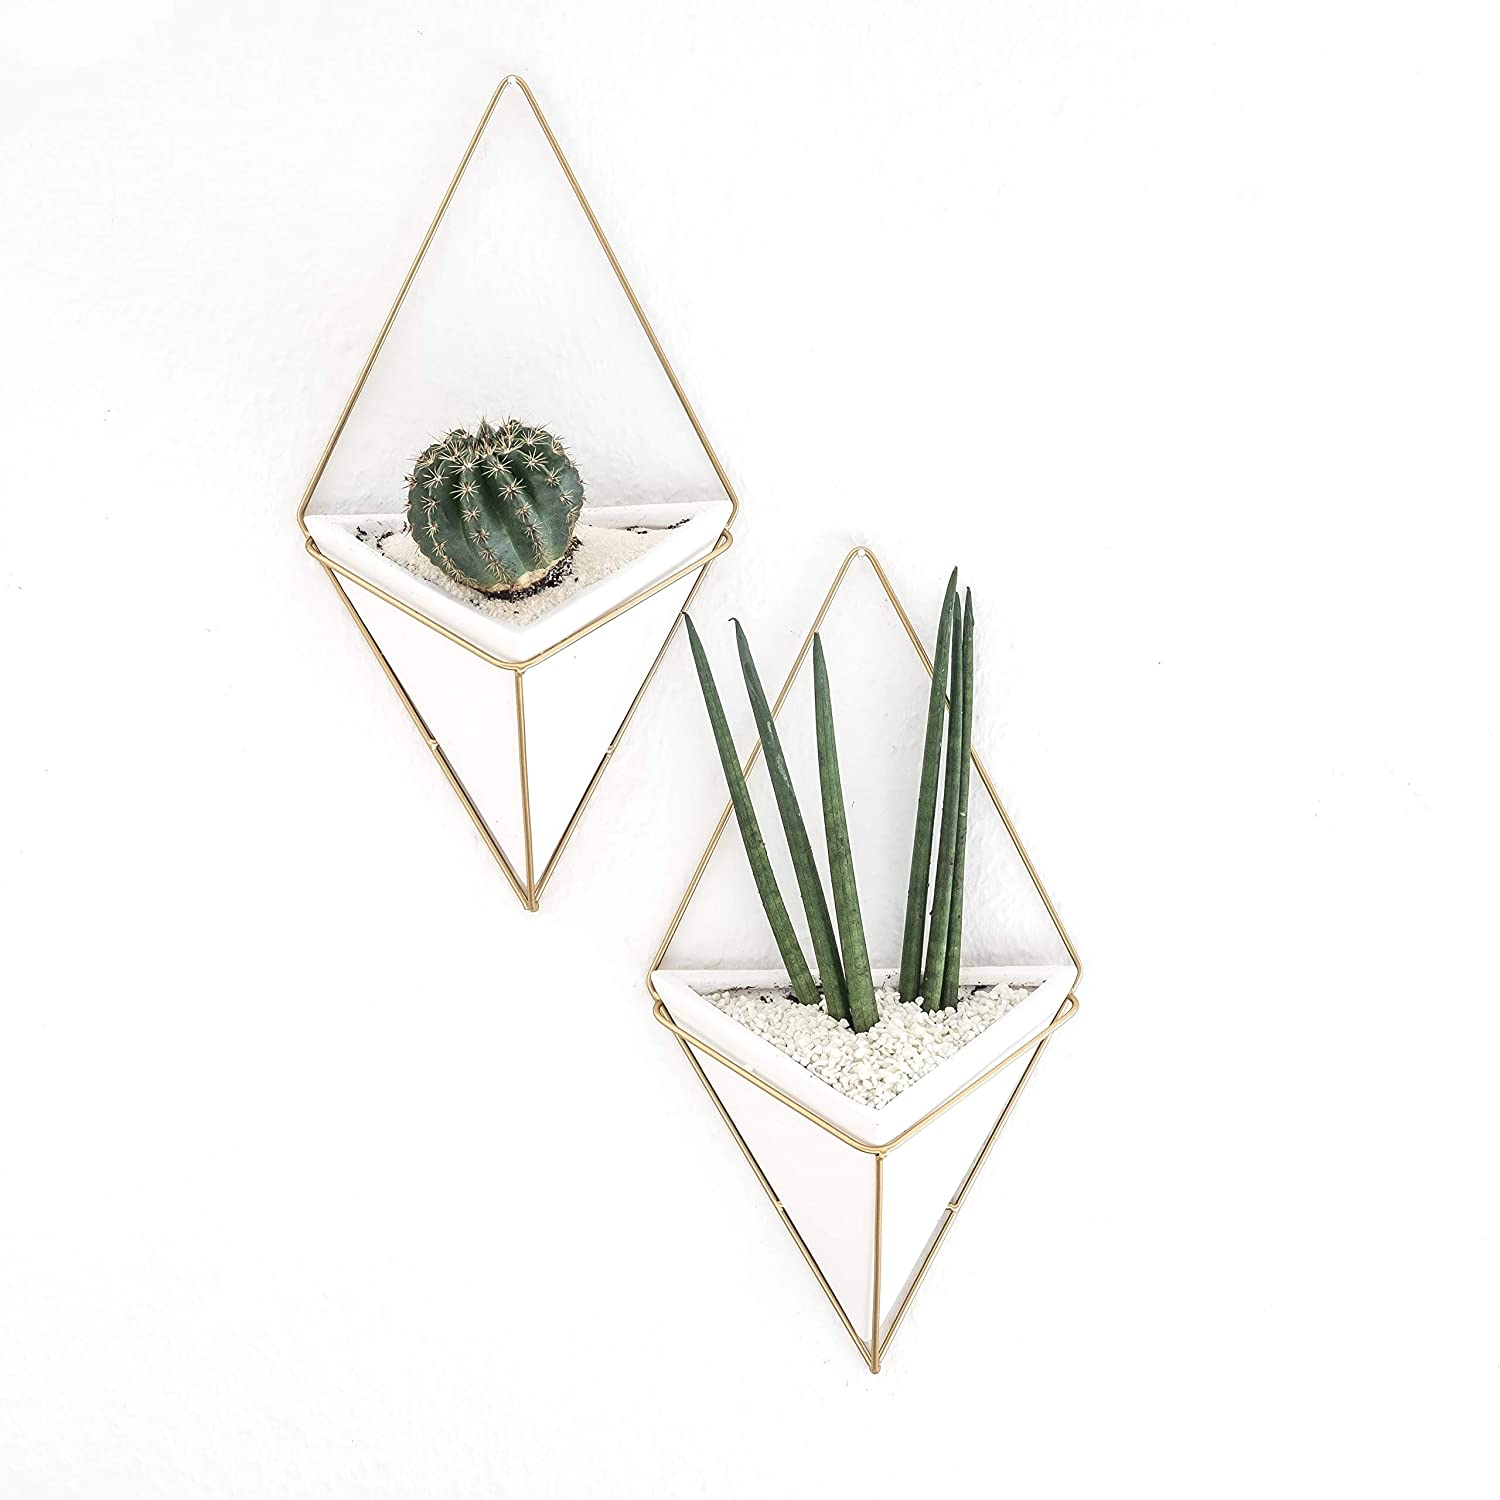 Set of 2 Geometric Hanging Large Succulent Wall Planters Pot, 7 inch White Ceramic with Gold Metal Triangle, Modern Cactus Bathroom Decor, Gallery Decorations, Boho Chic Flower Pots, Vase, Container